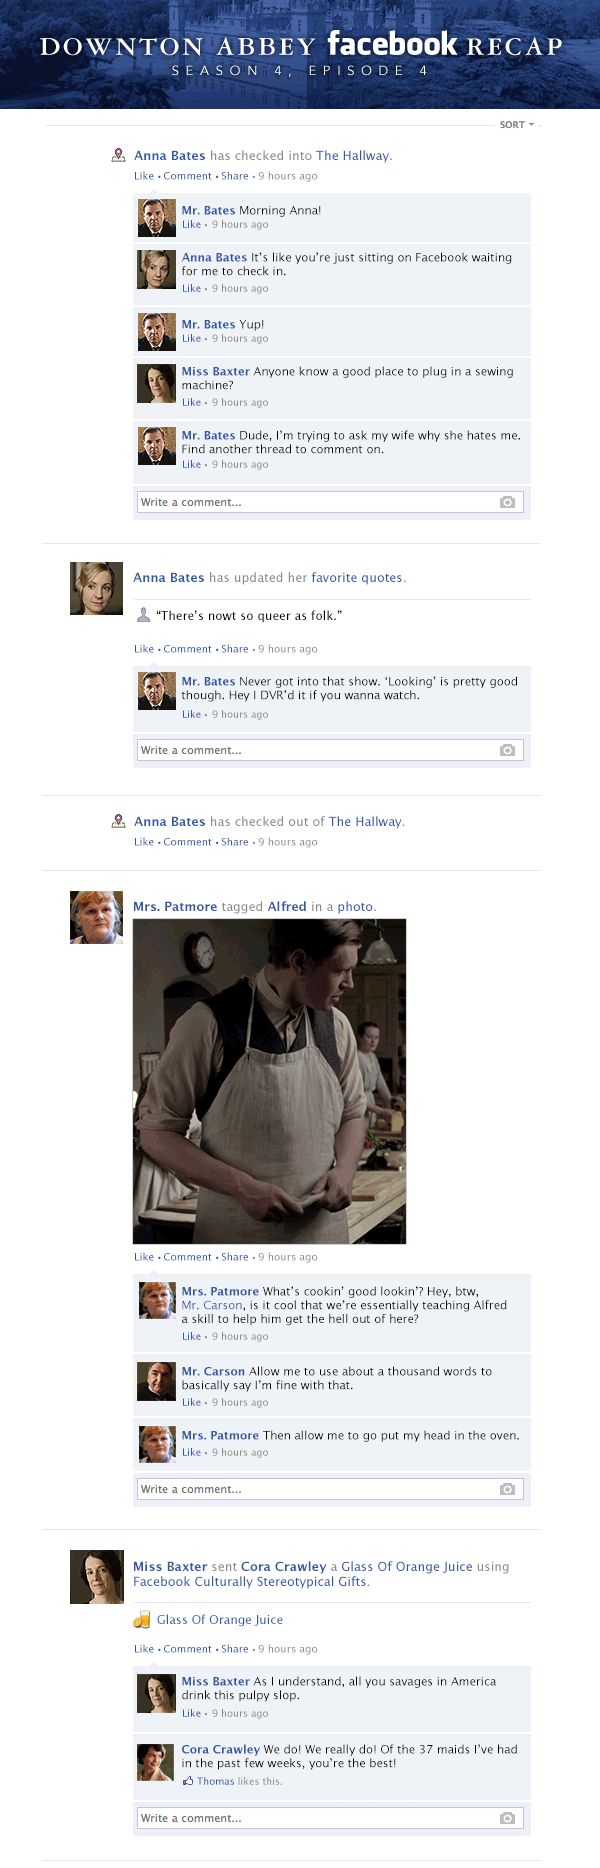 If Downton Abbey took place entirely on Facebook - Season 4, Episode 4.